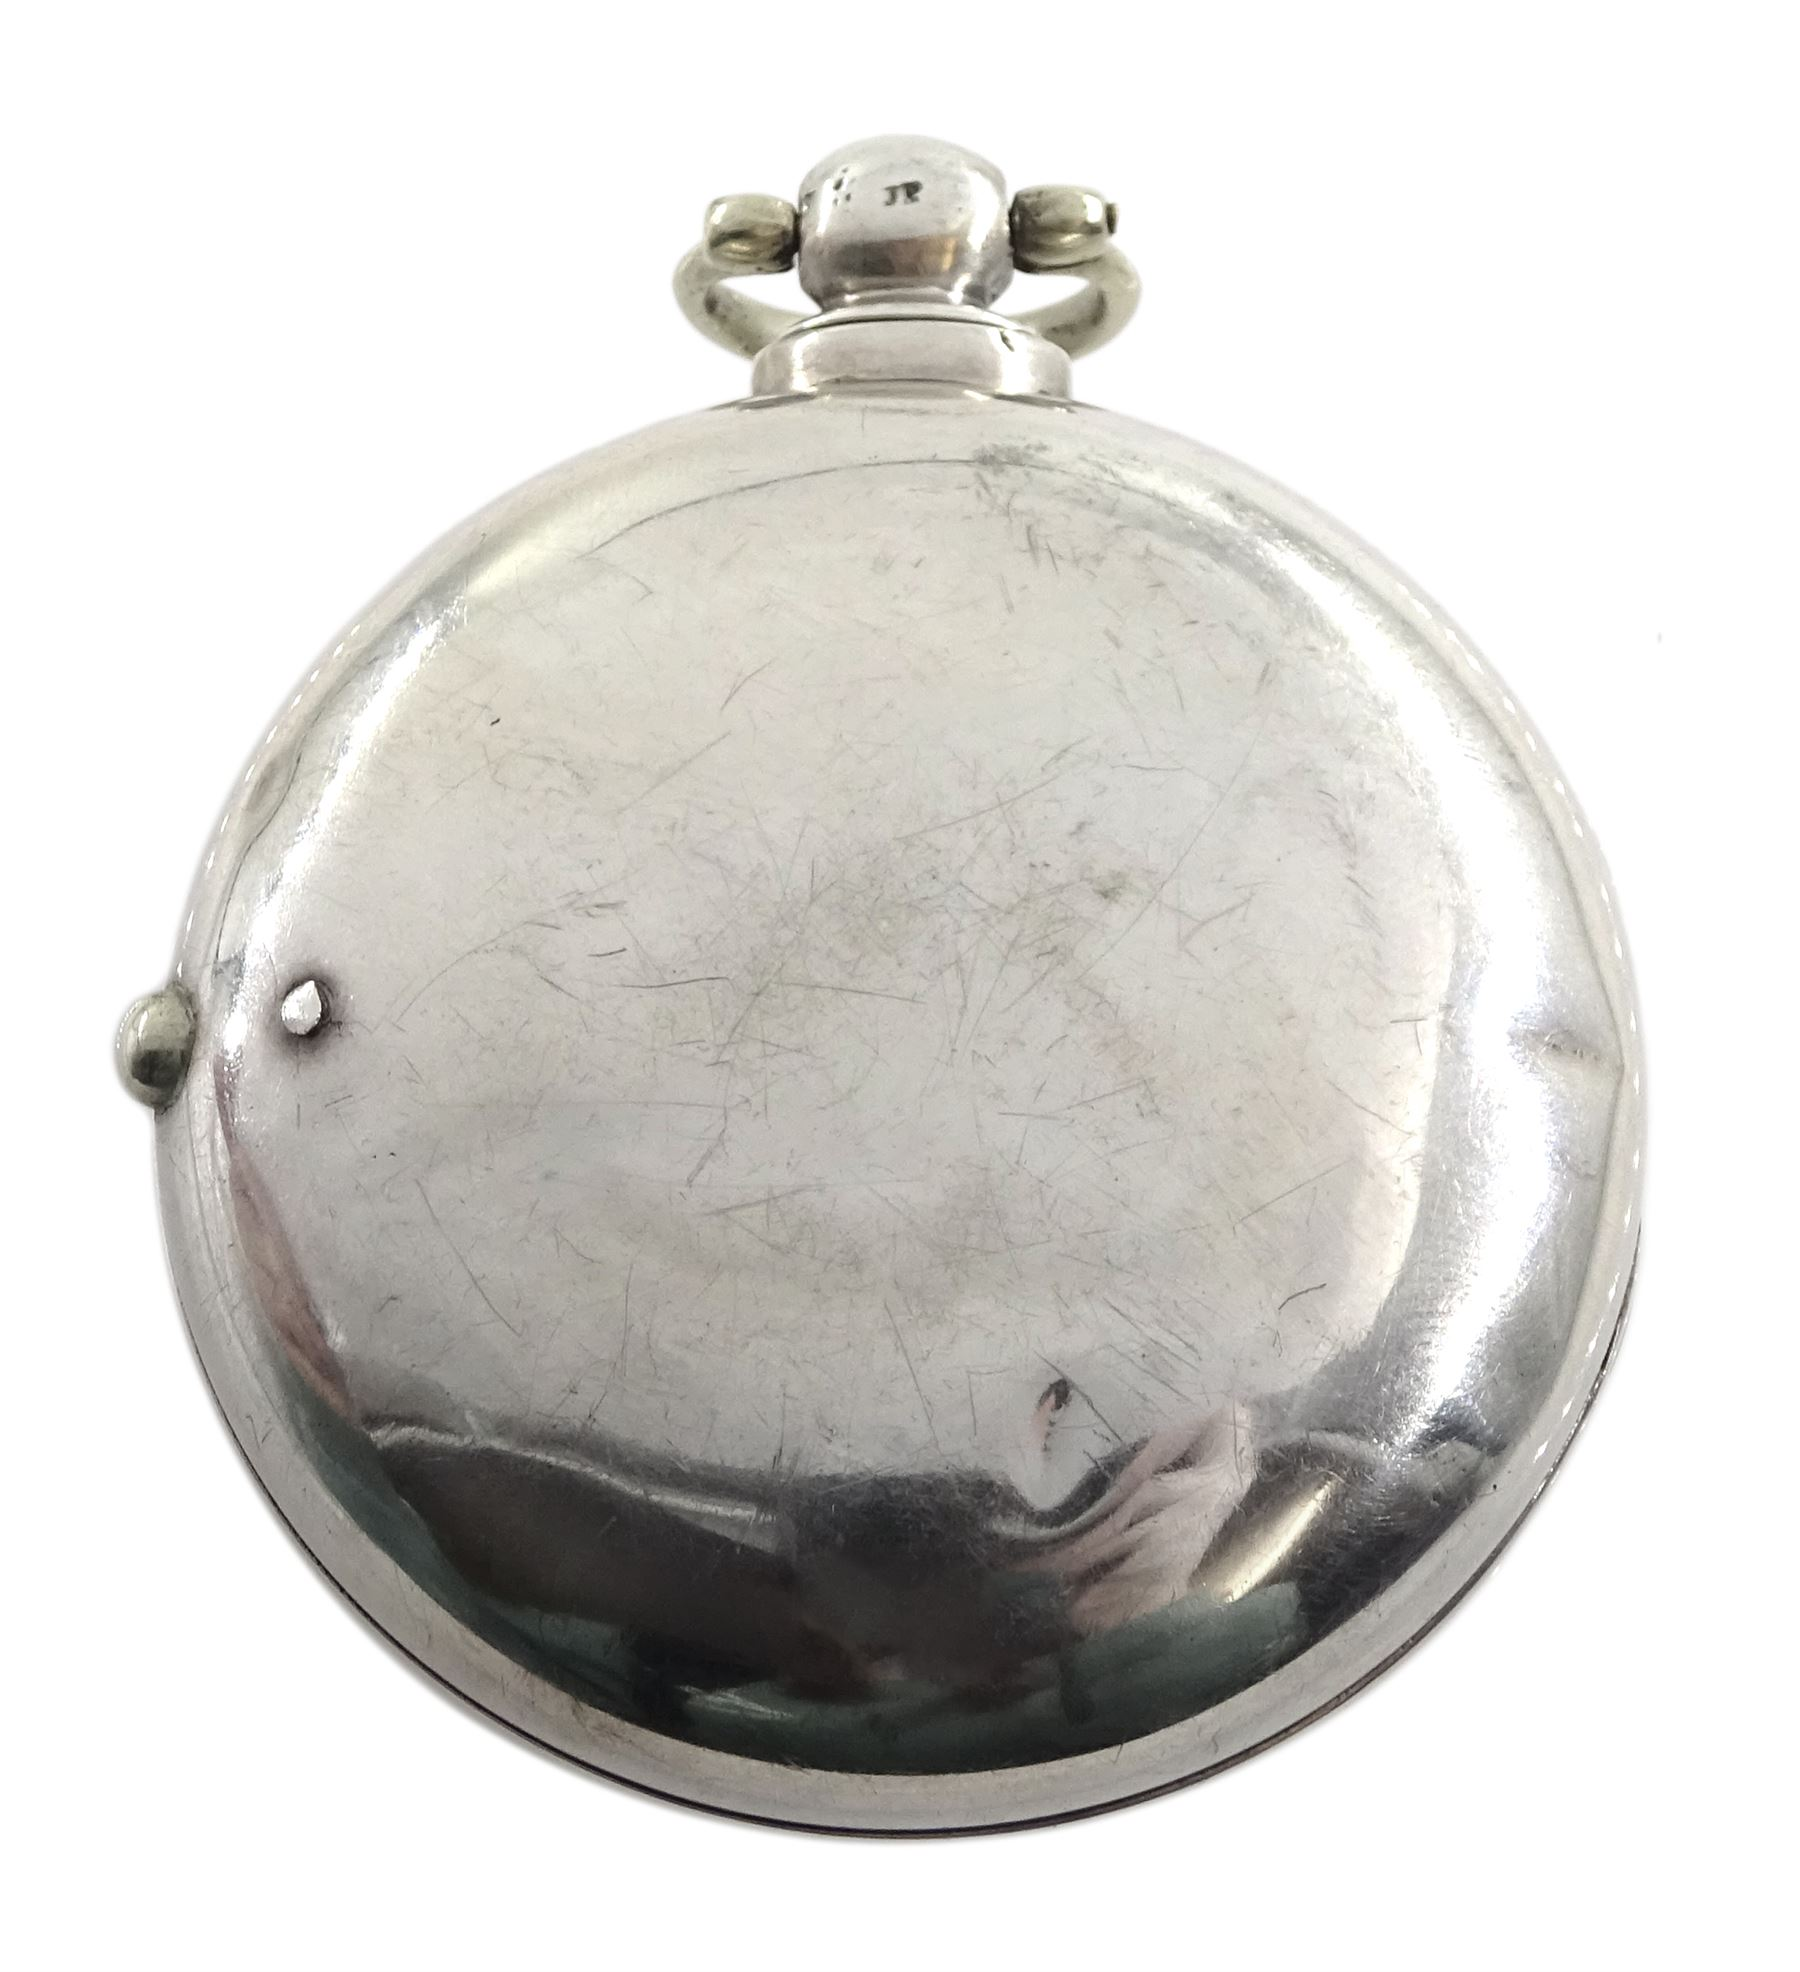 William IV silver pair cased verge fusee pocket watch by J C Heselton - Image 2 of 8